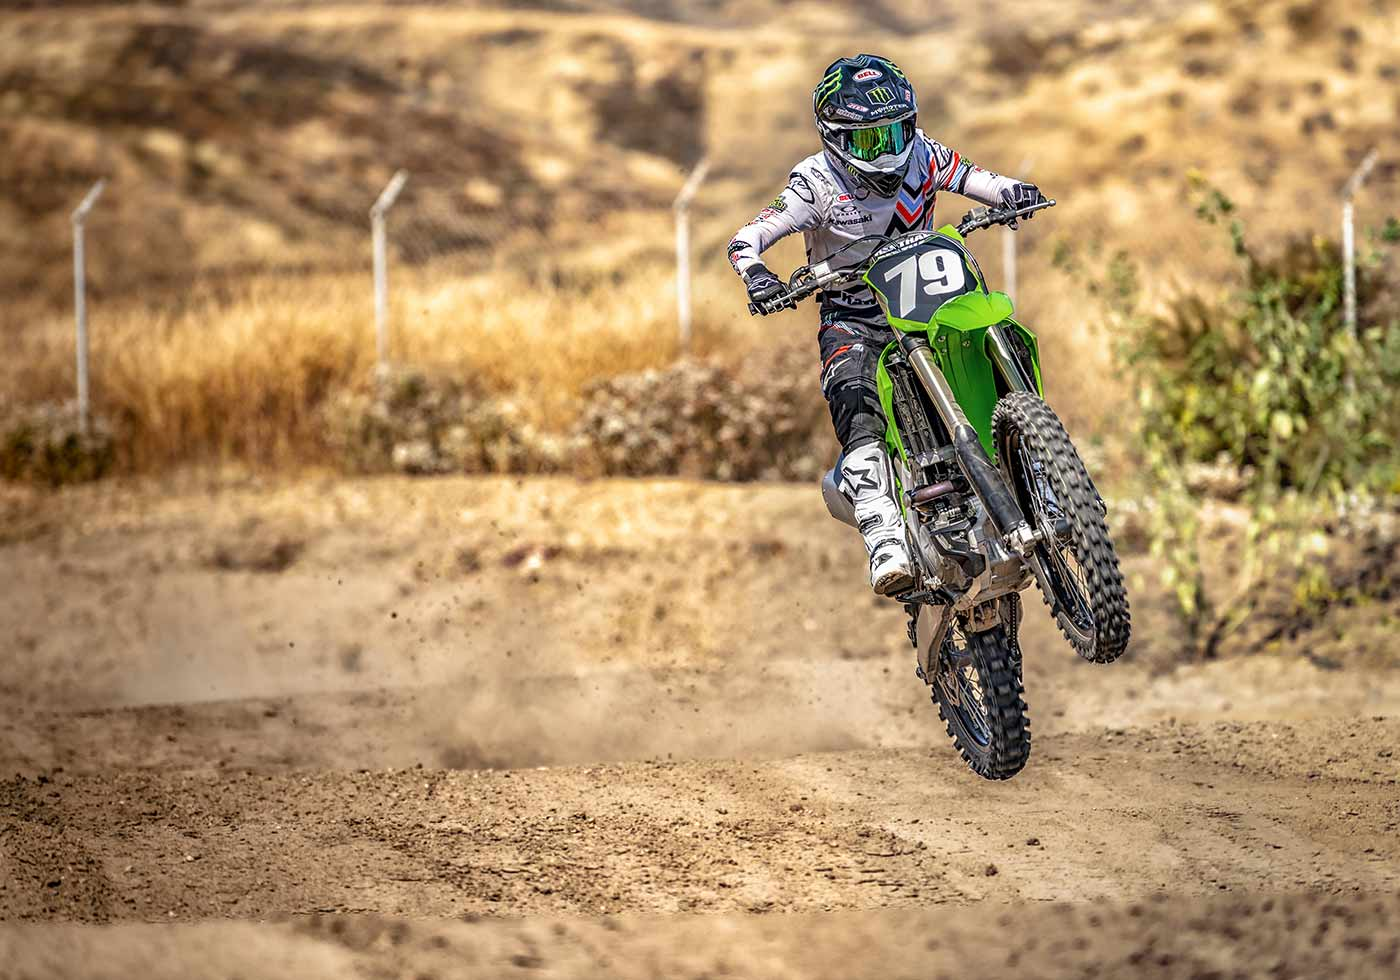 The KX250 has been designed for track/dirt use only. It is not street legal as it doesn't come with a headlight, taillight, turn indicators, or rear-view mirrors.